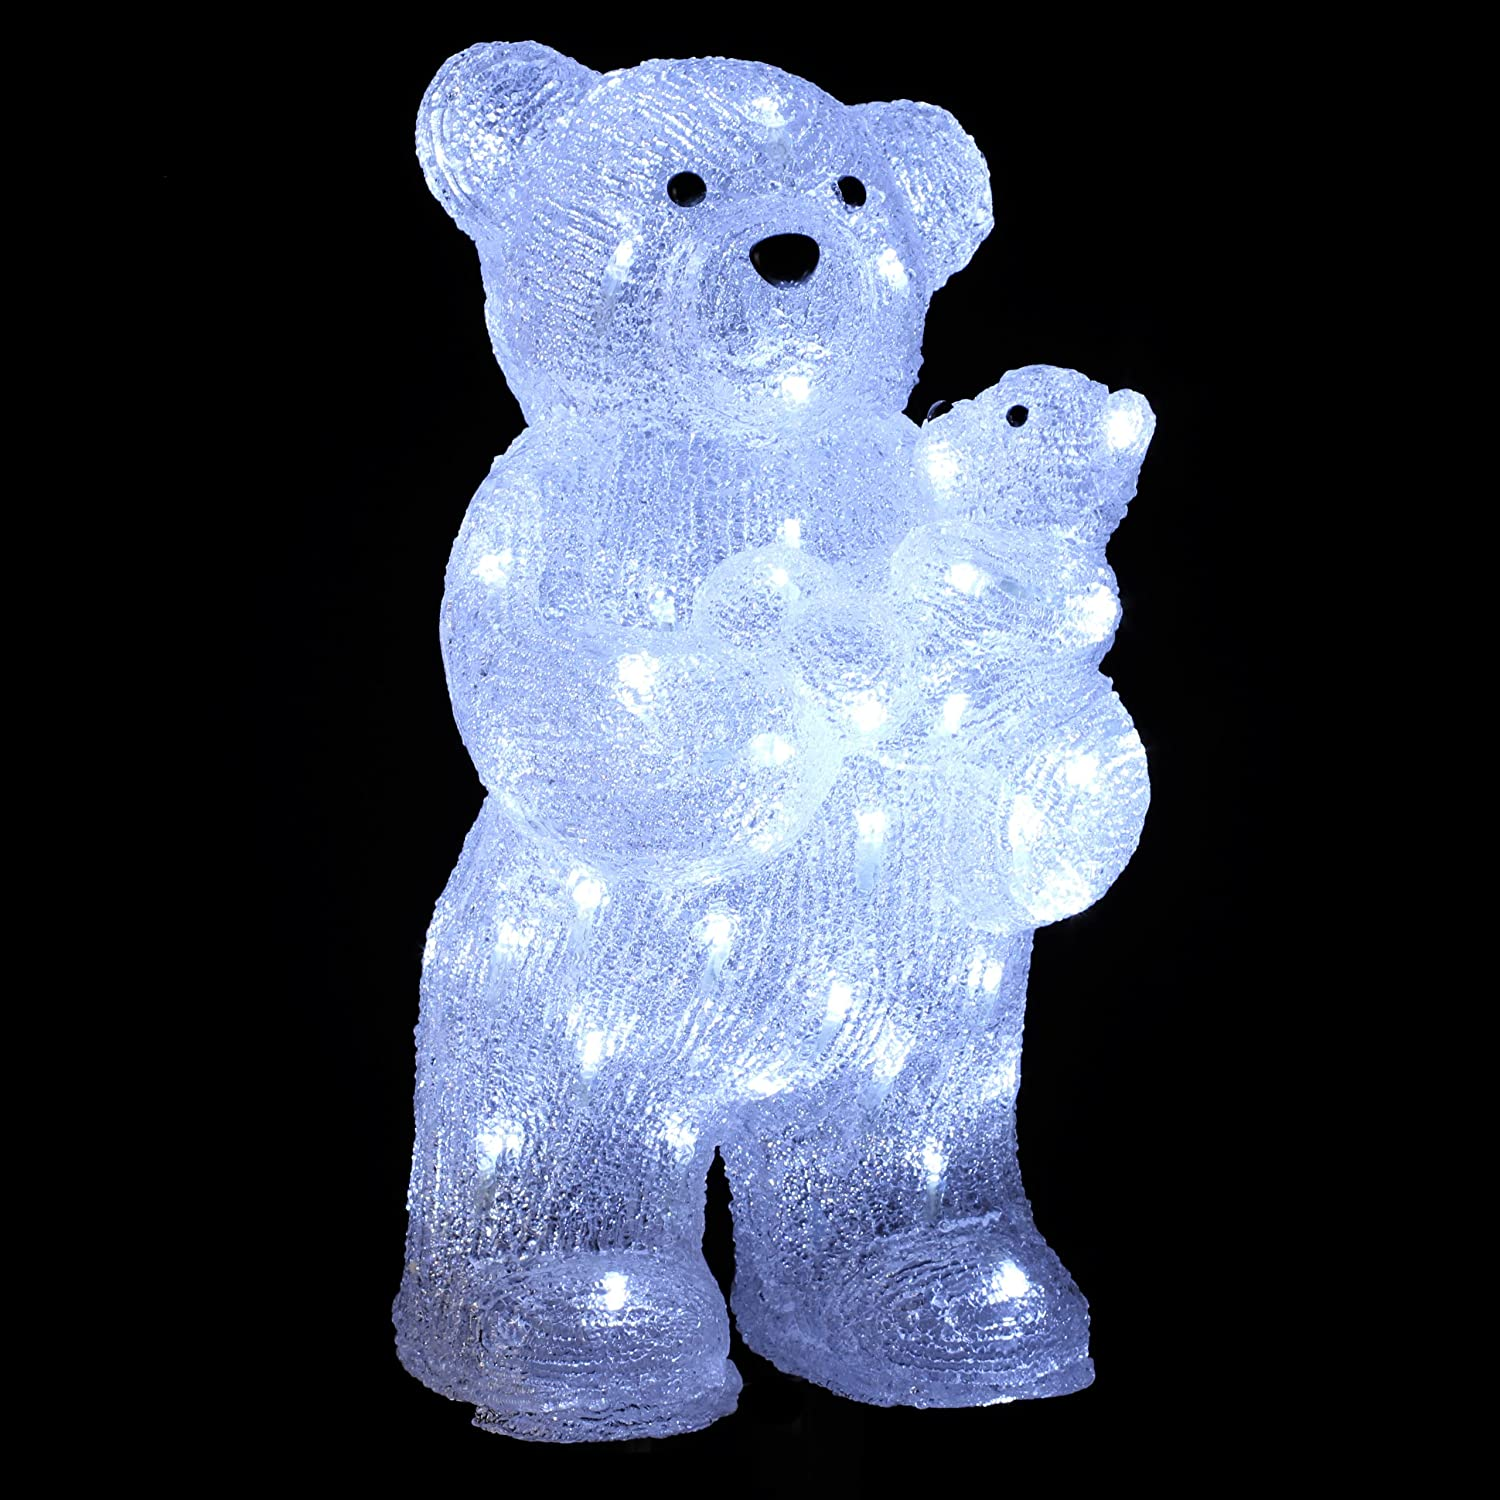 ours lumineux noel DECO NOEL   OURS et OURSON lumineux   effet givré   56 lampes LED  ours lumineux noel